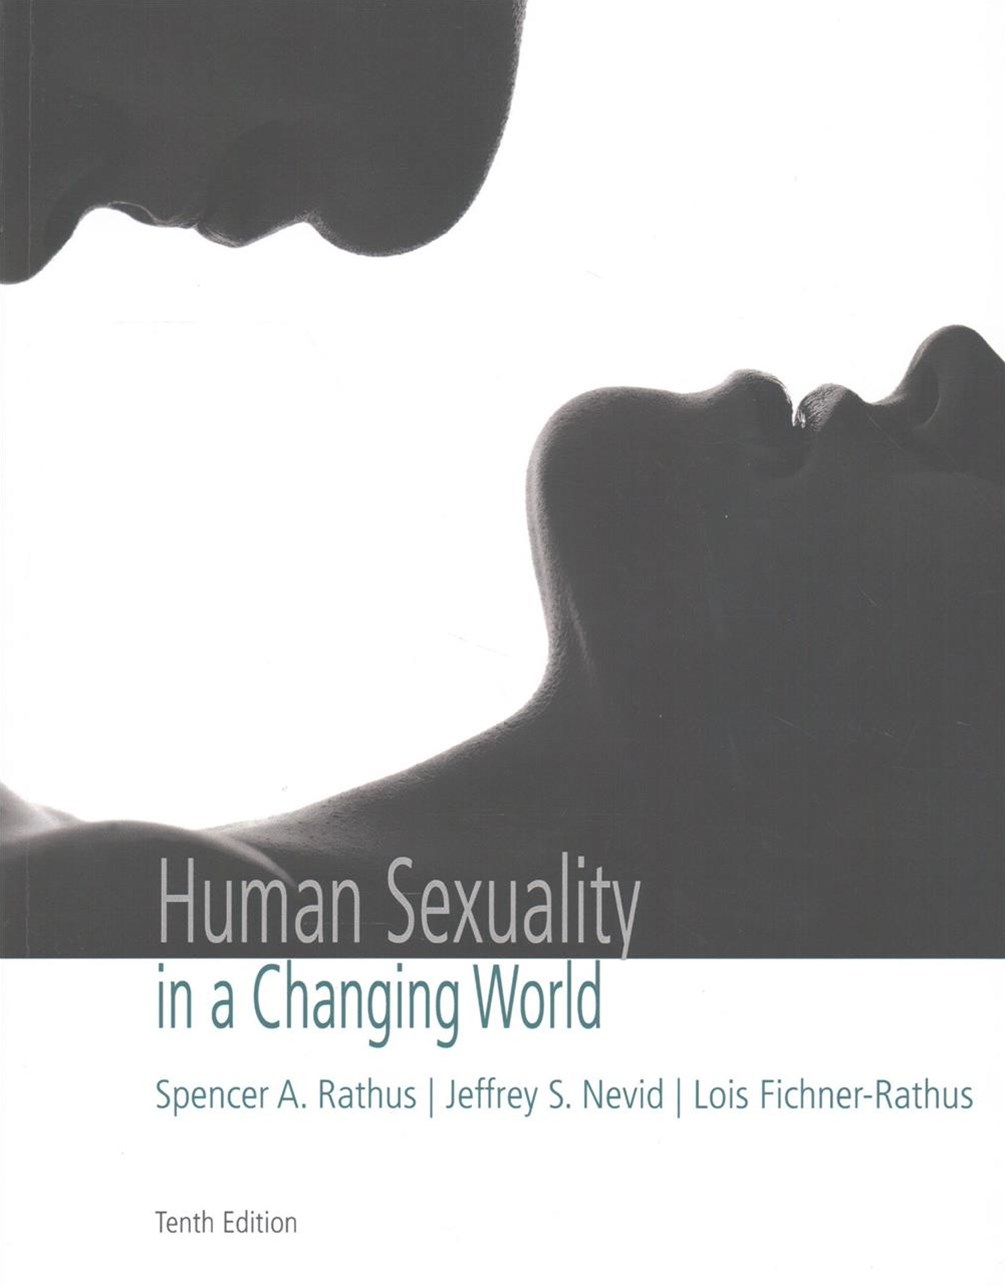 Human Sexuality in a Changing World